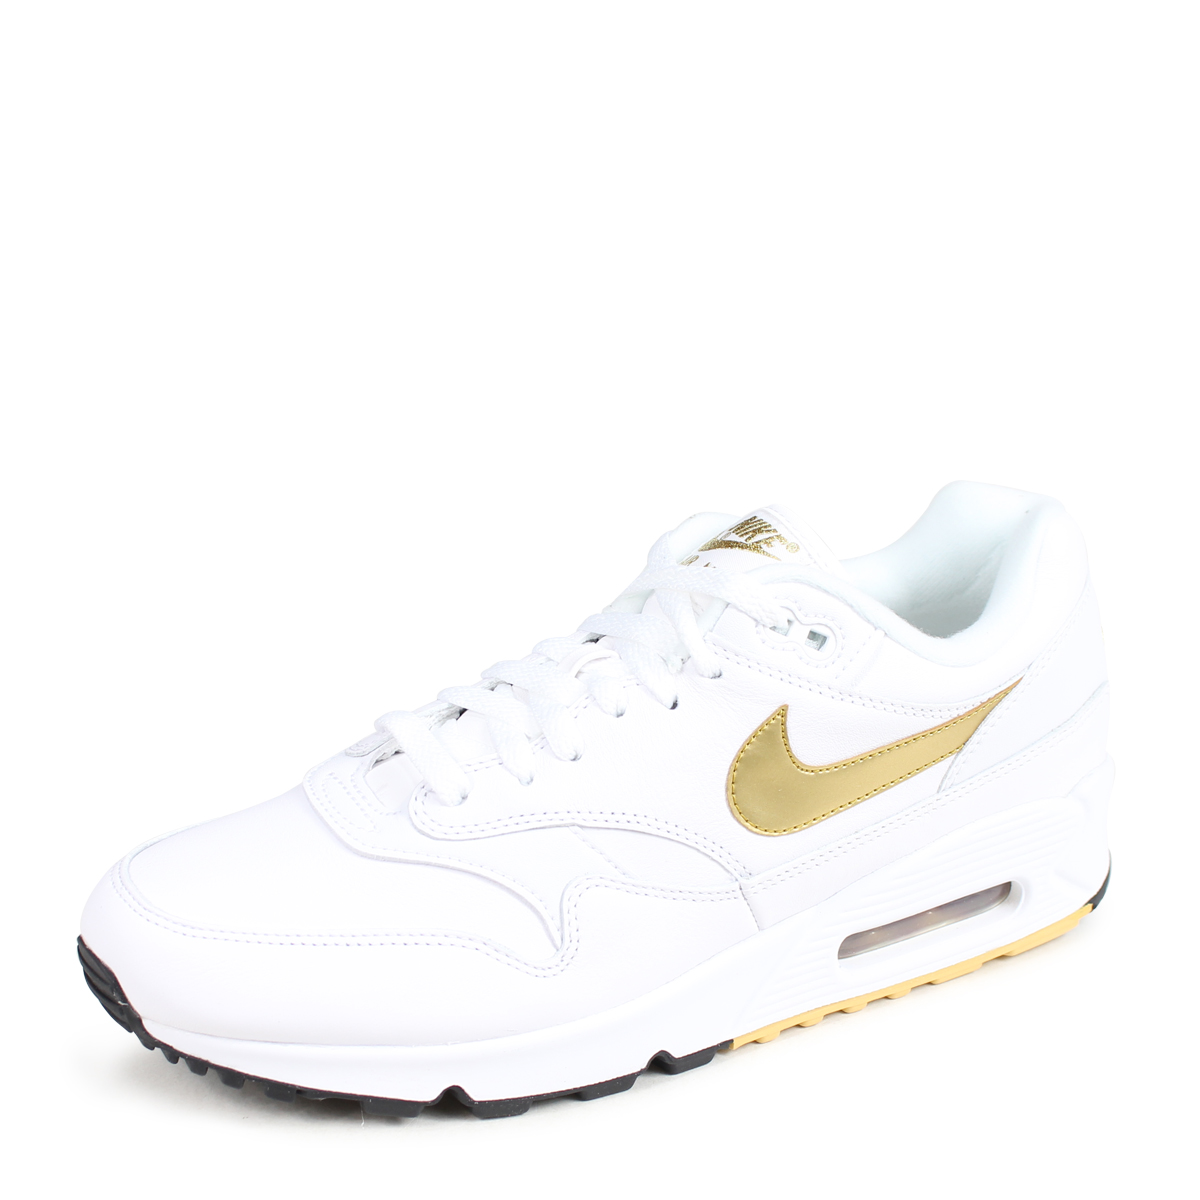 separation shoes 69bdd fff79 NIKE AIR MAX 90 1 Kie Ney AMAX 90 1 sneakers men AJ7695-102 white  load  planned Shinnyu load in reservation product 9 11 containing   189